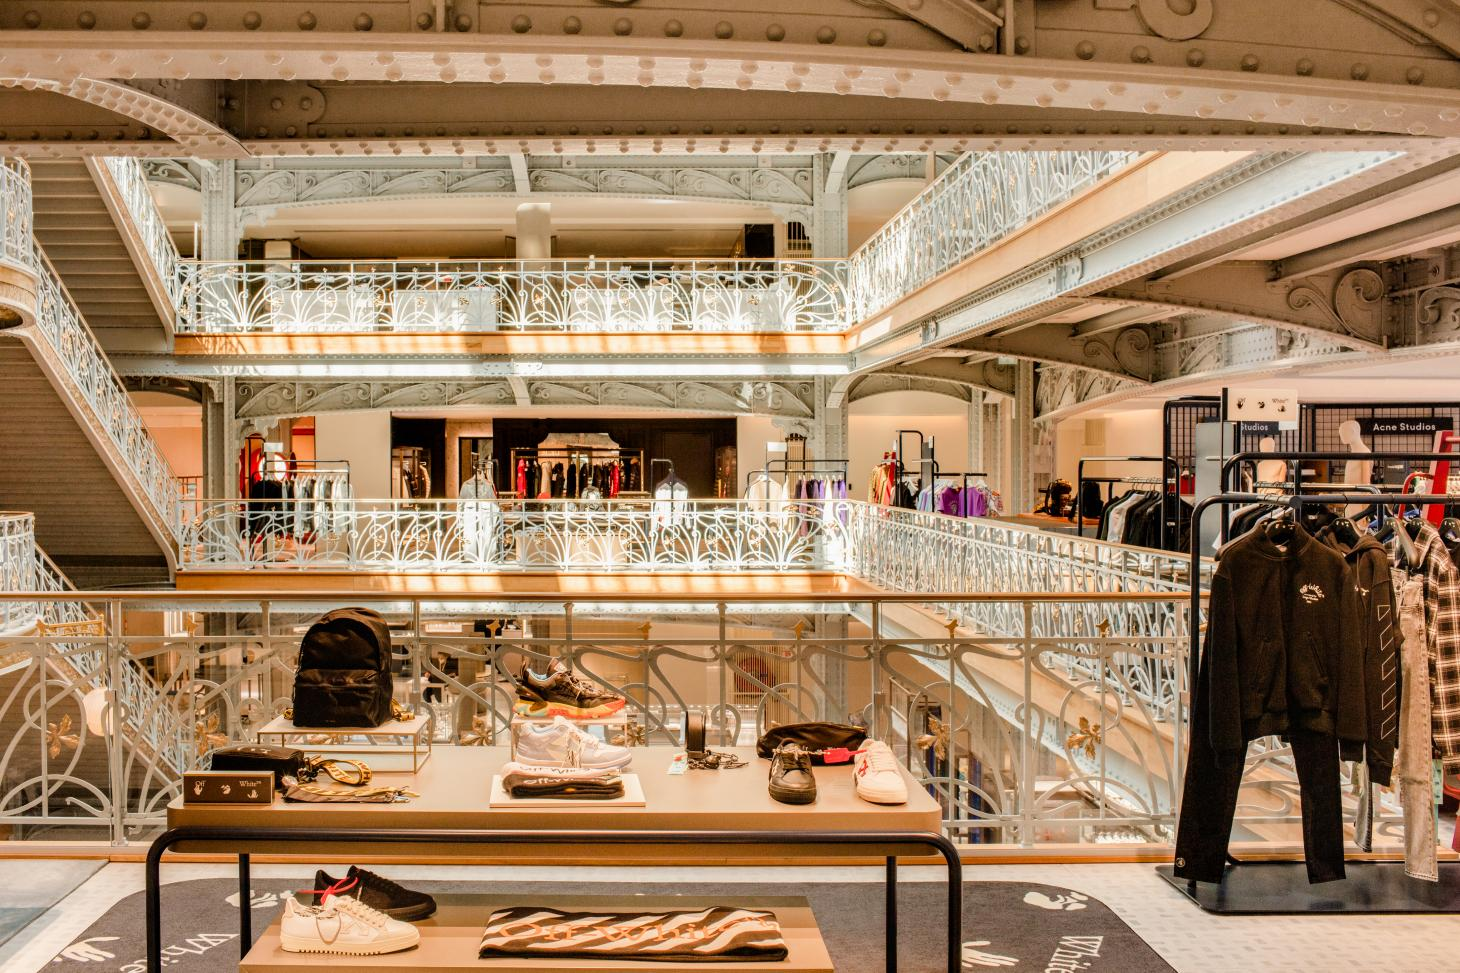 glamour and historical details abound at the La Samaritaine